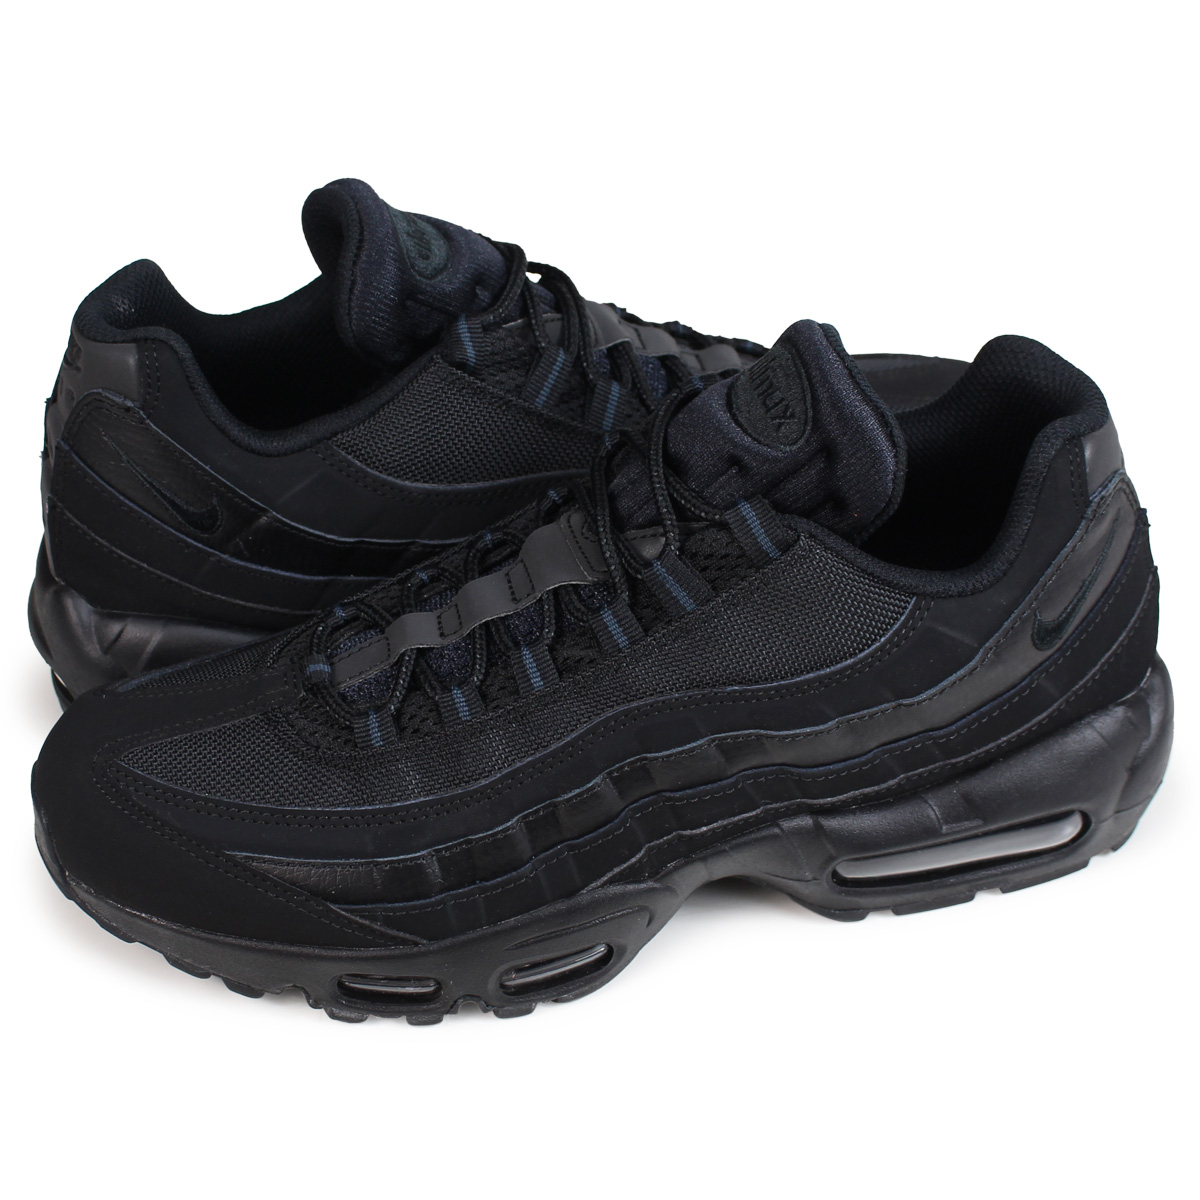 new concept 7c29d 5eac3 Nike NIKE Air Max 95 sneakers men AIR MAX 95 609,048-092 black  the 5 8  additional arrival   194